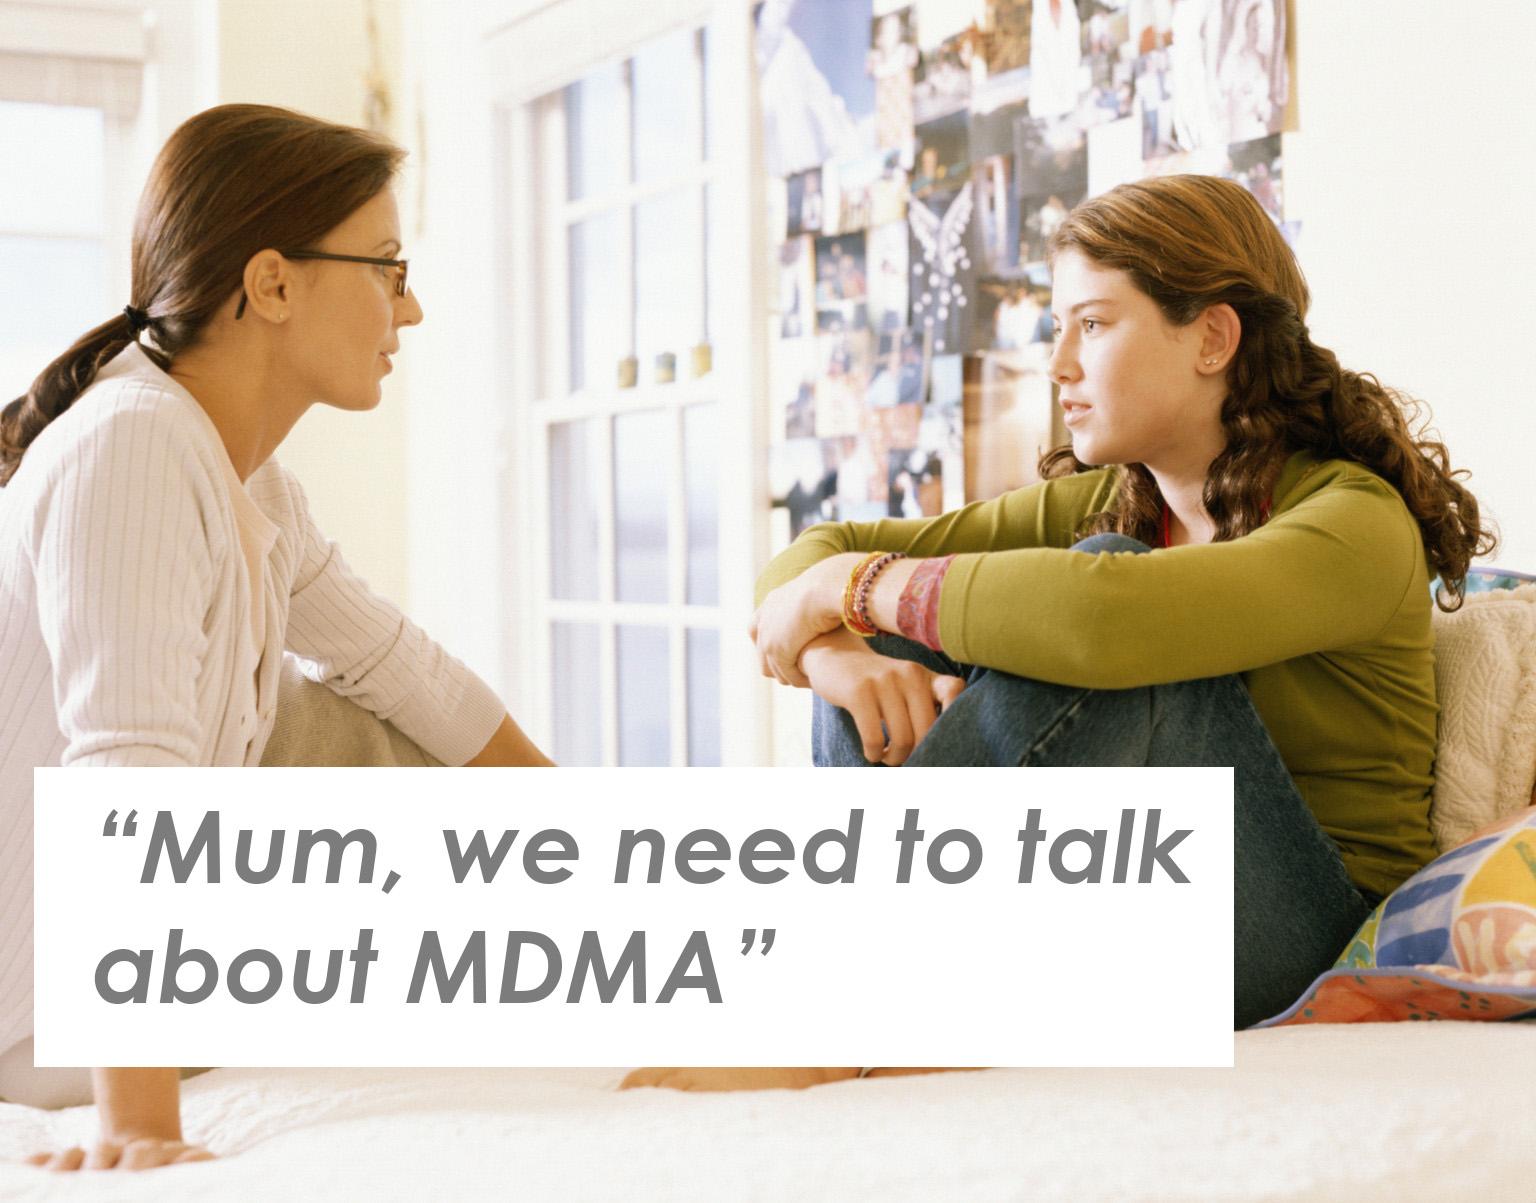 Need_to_talk_about_MDMA.jpg